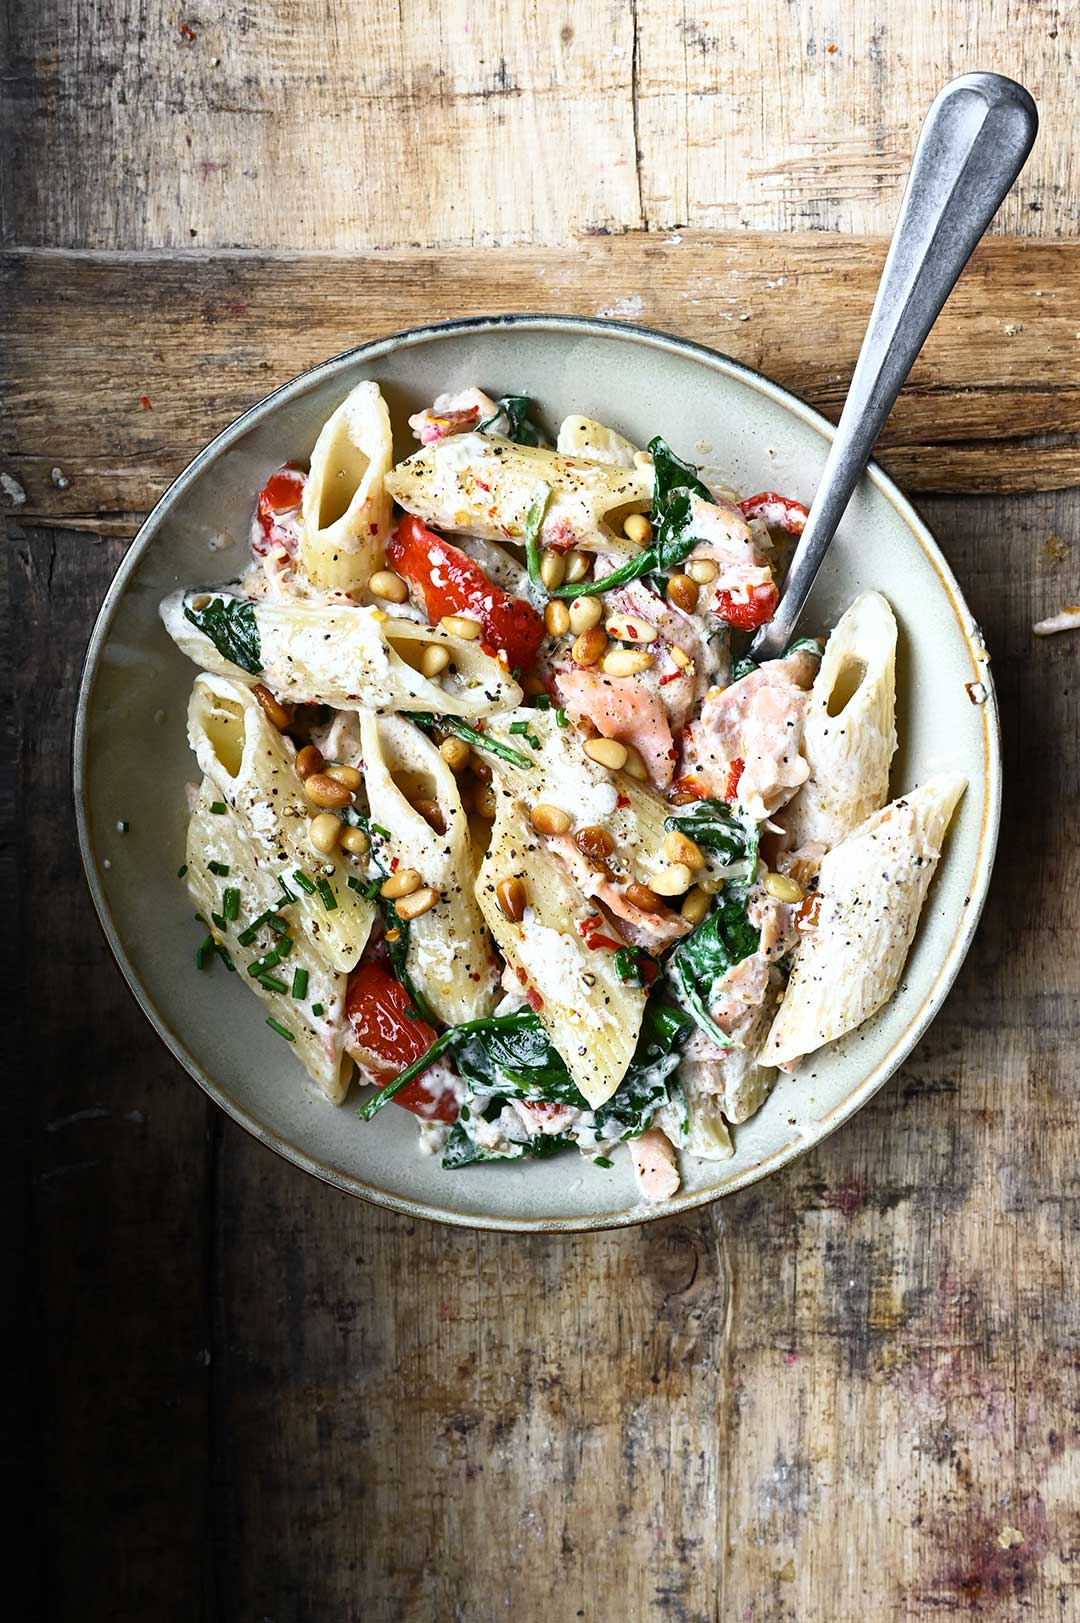 serving dumplings | Penne with smoked salmon and mascarpone